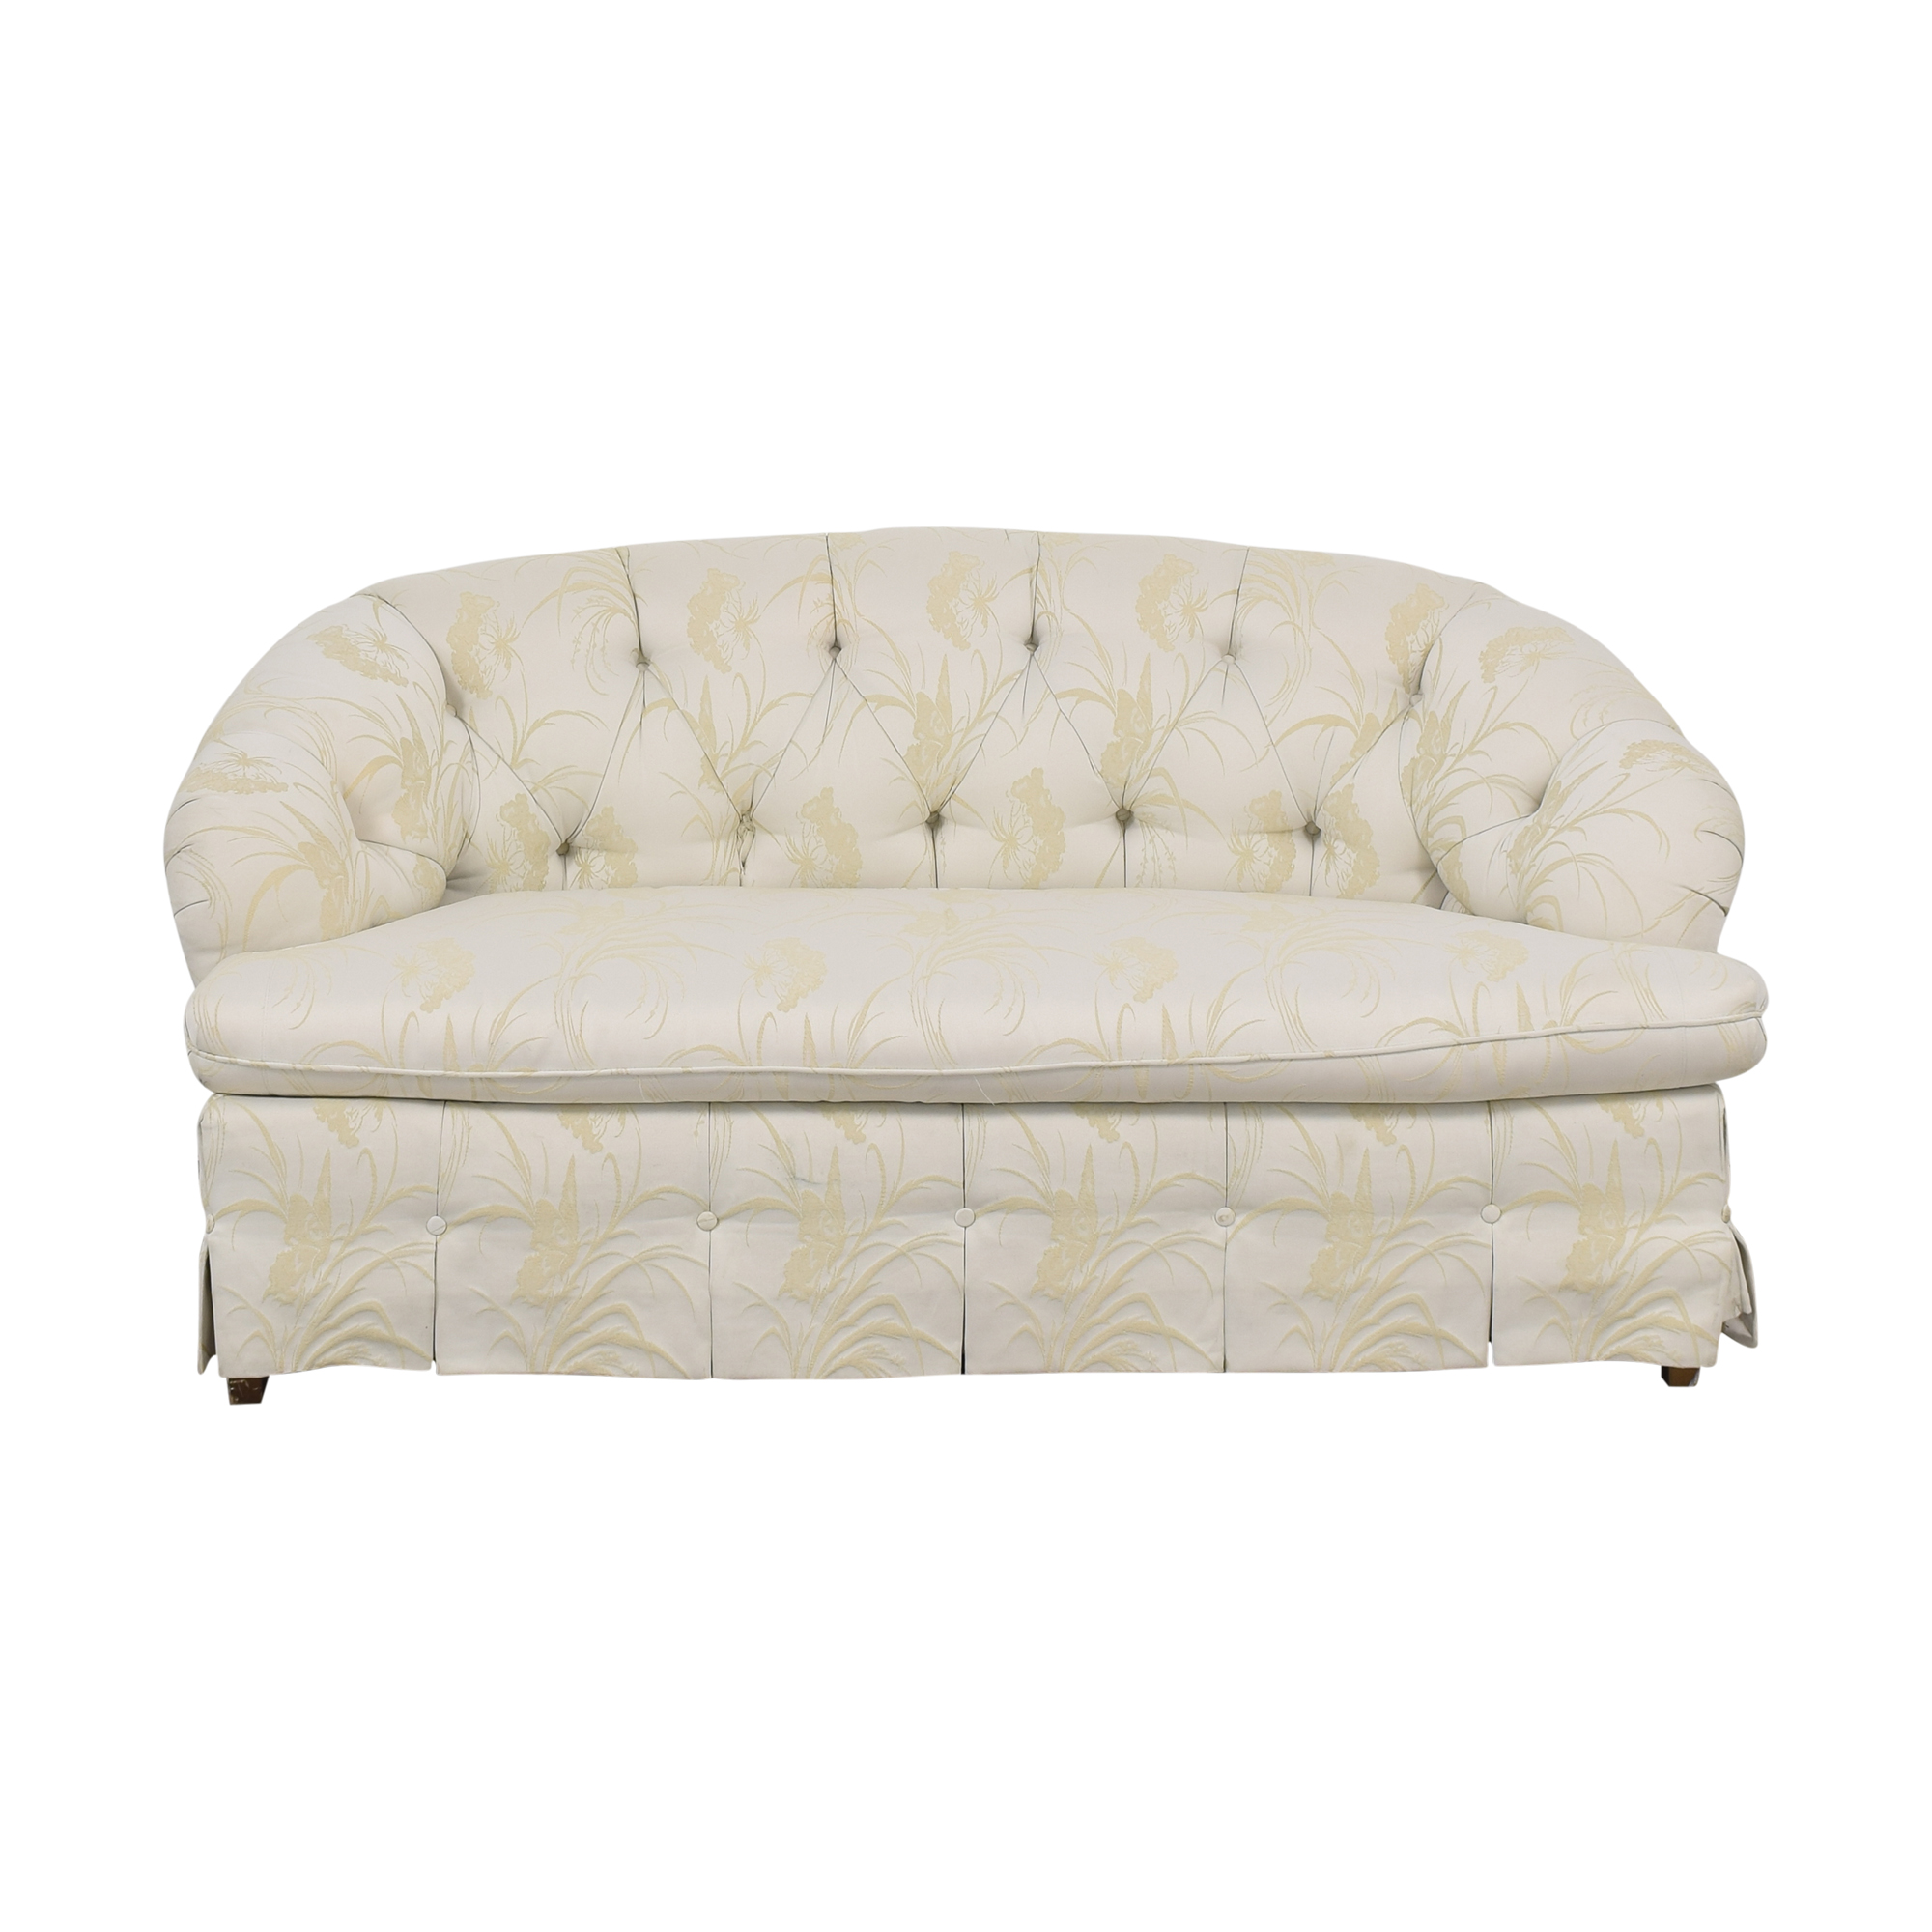 buy Key City Furniture Key City Furniture Tufted Loveseat online